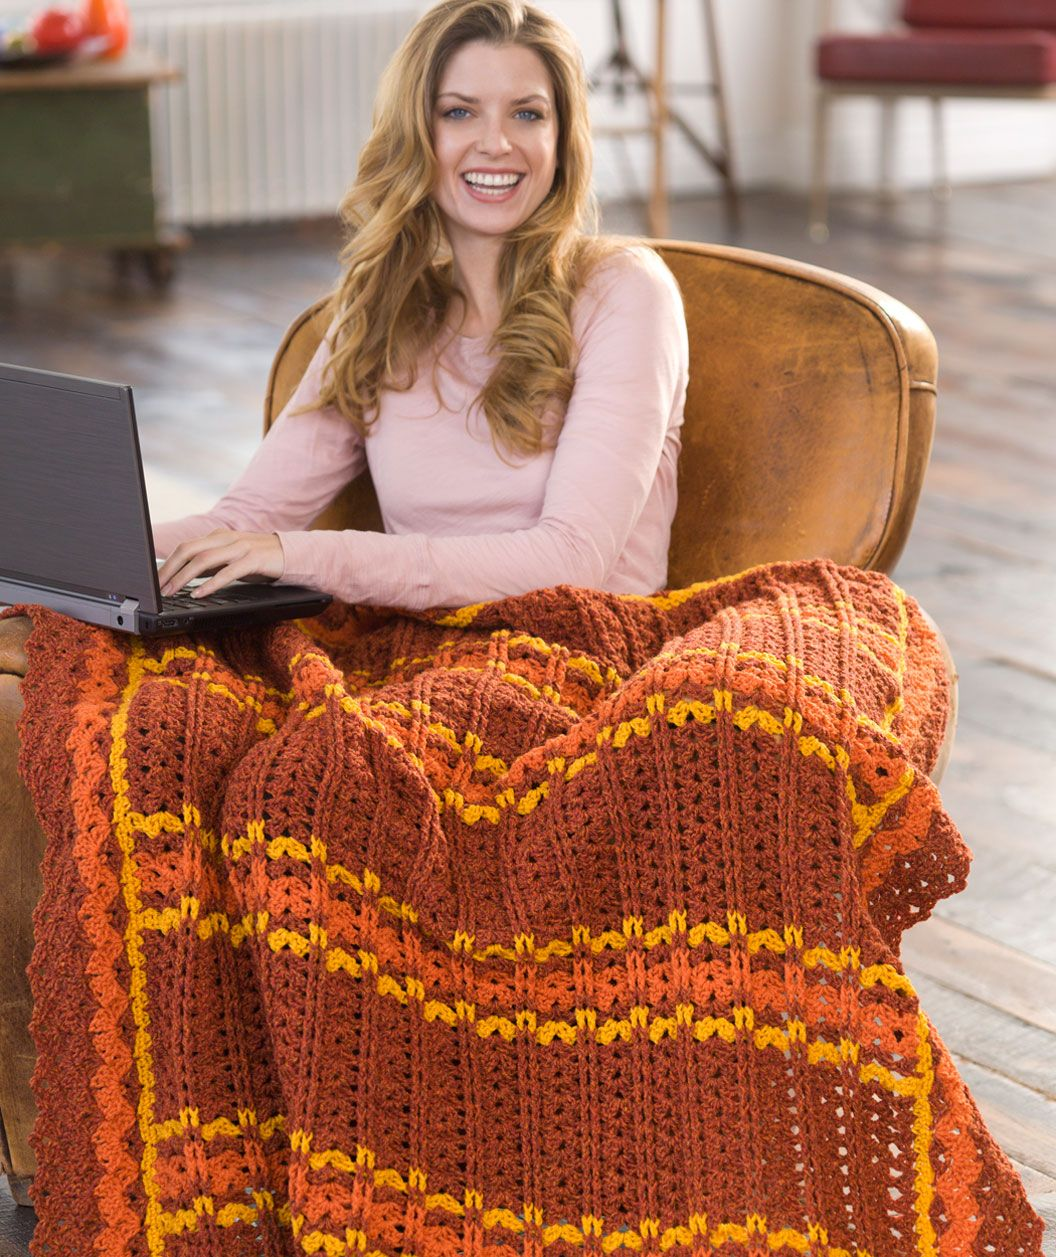 Optimistic Striped Throw Free Crochet Pattern from Red Heart